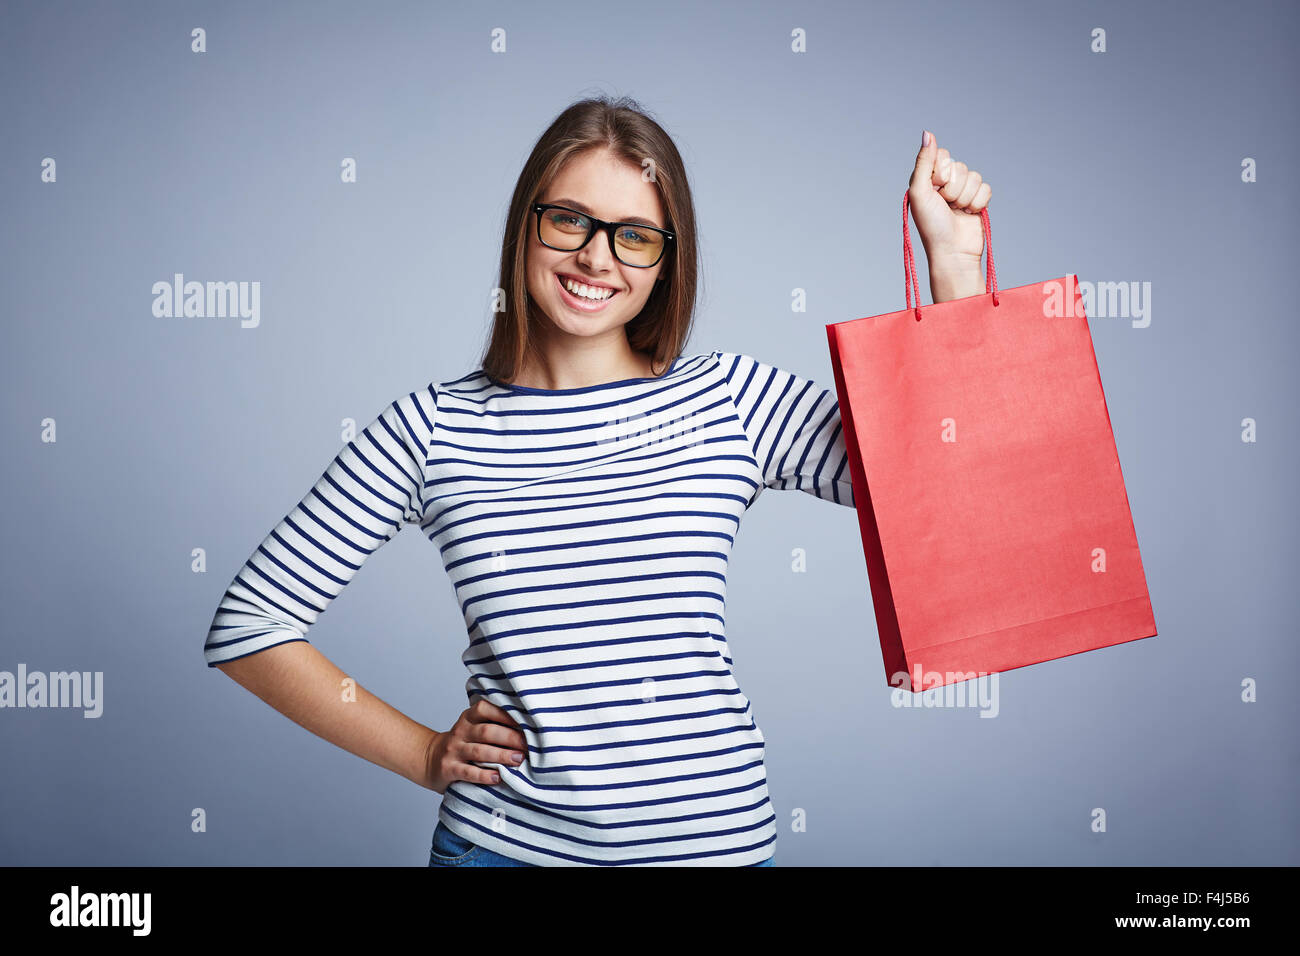 Happy young shopper with red paperbag looking at camera - Stock Image